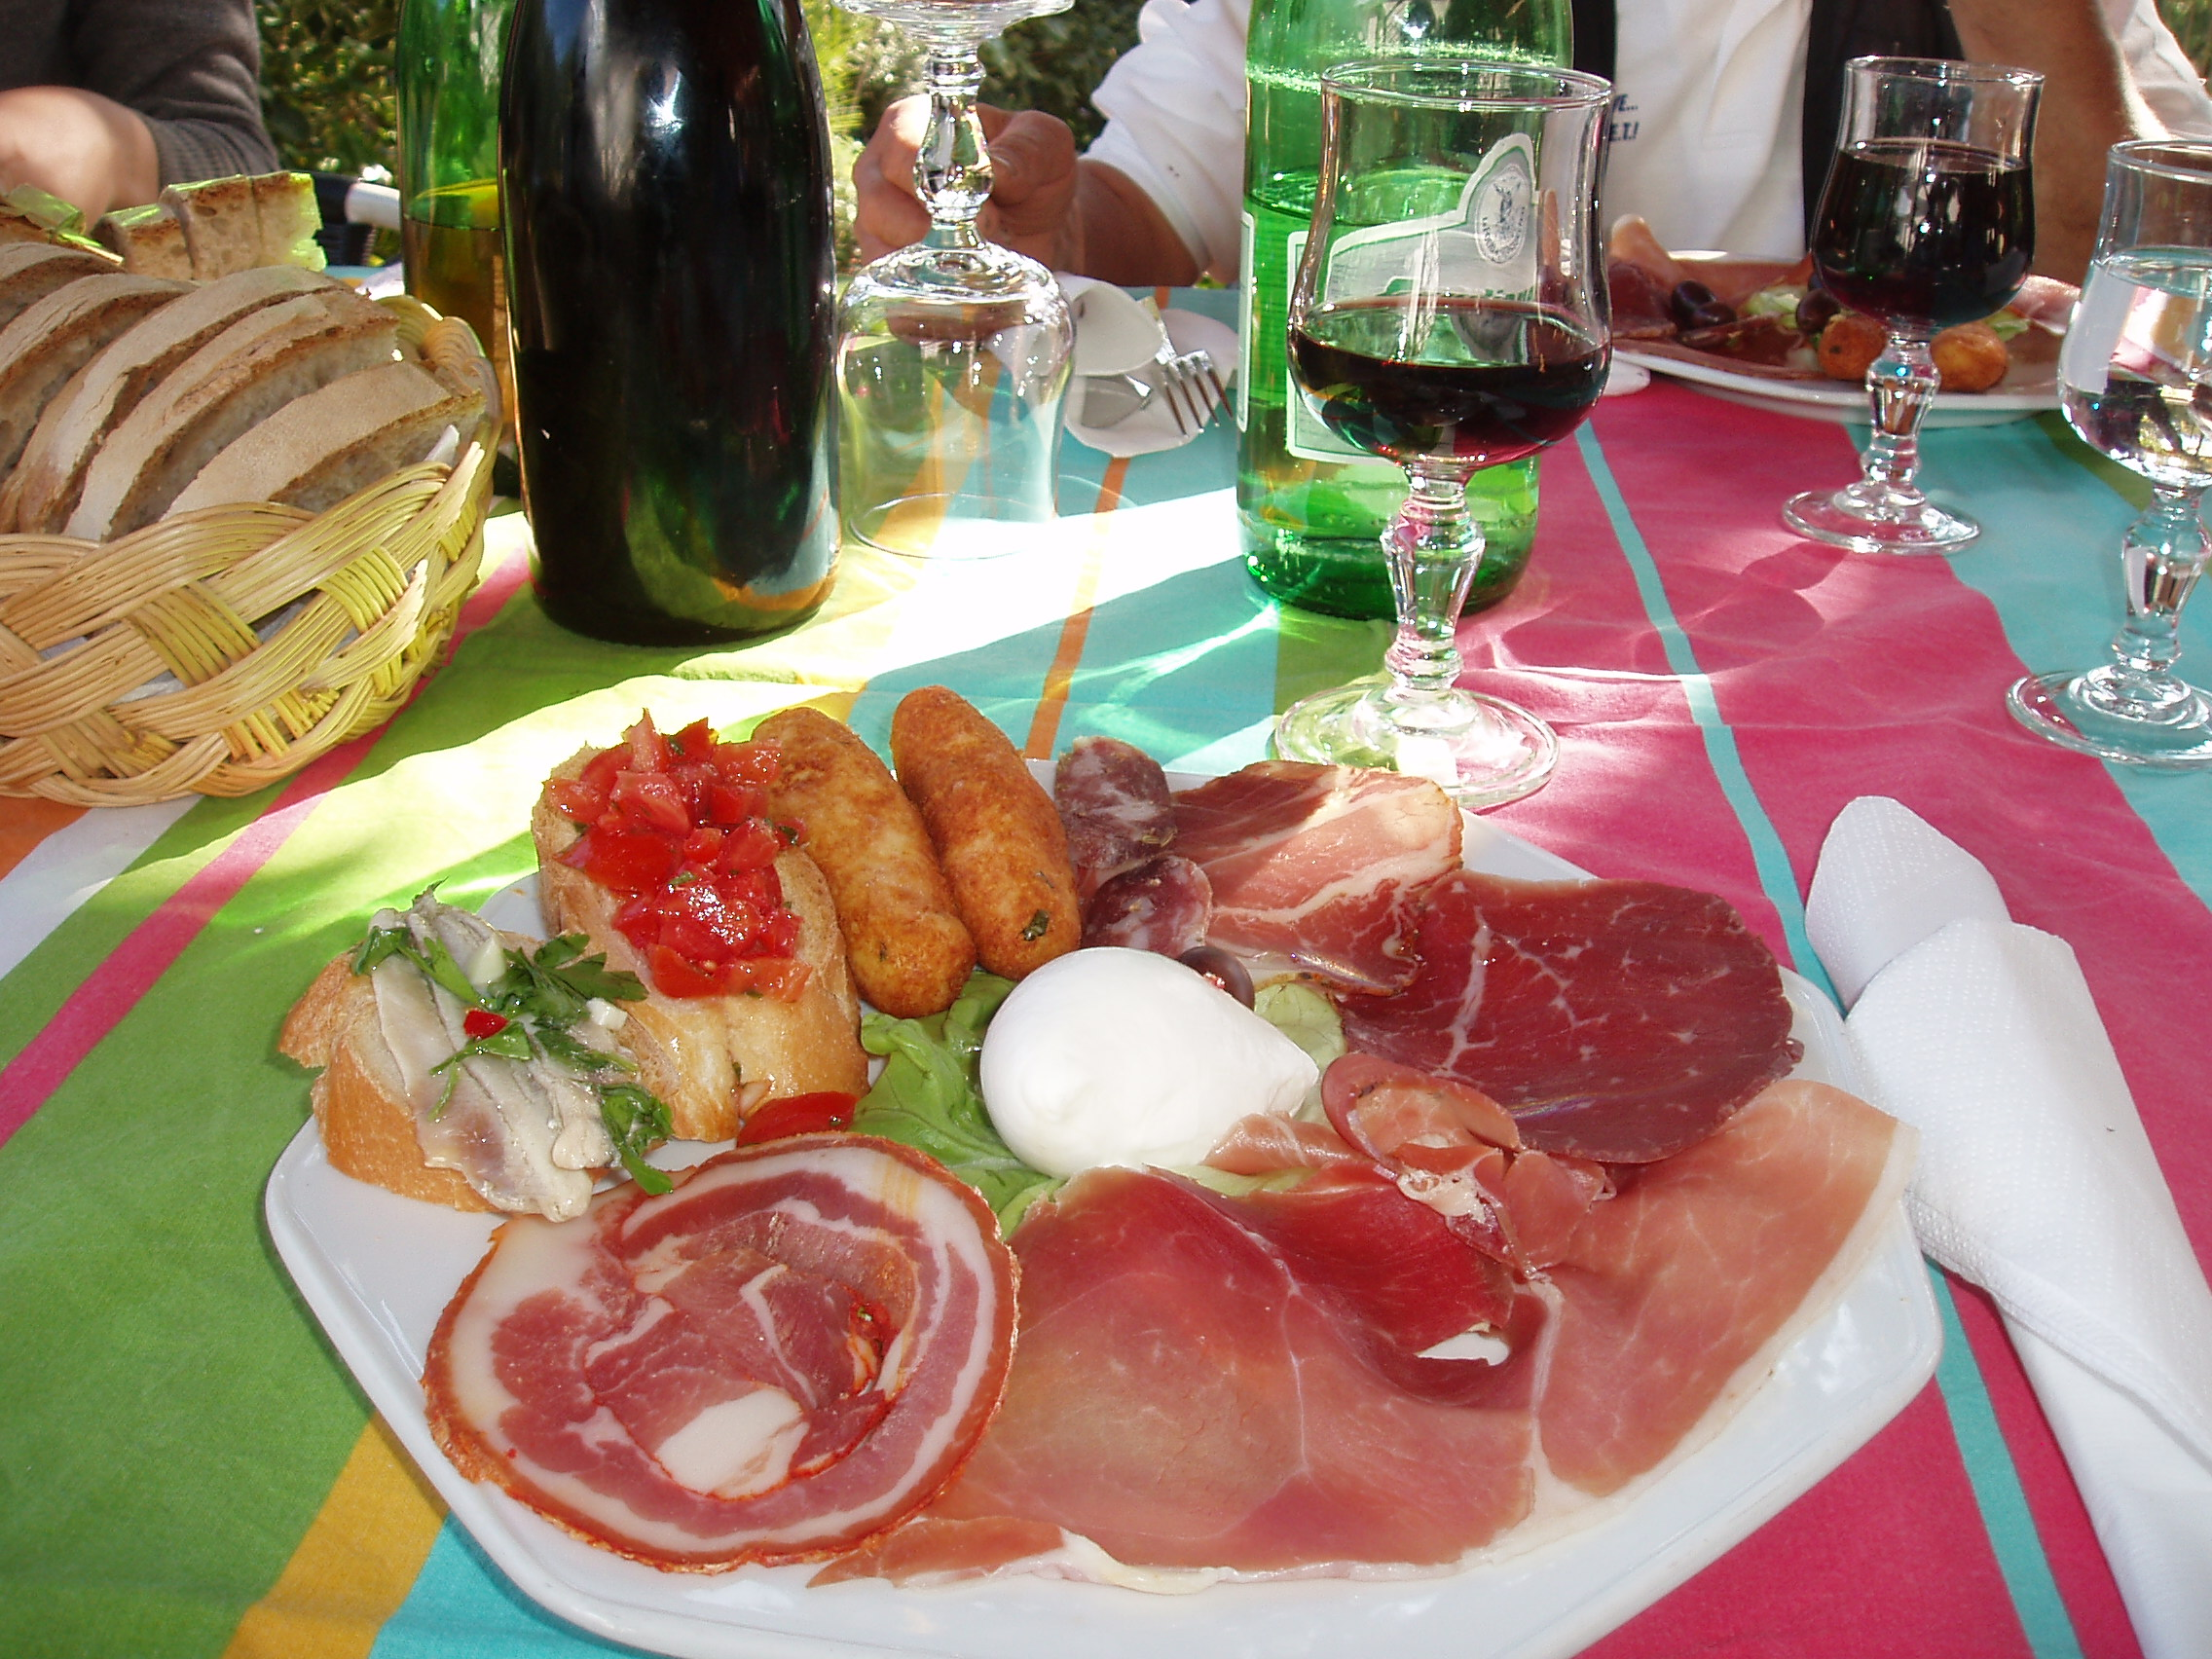 Not your average picnic lunch at I Moresani